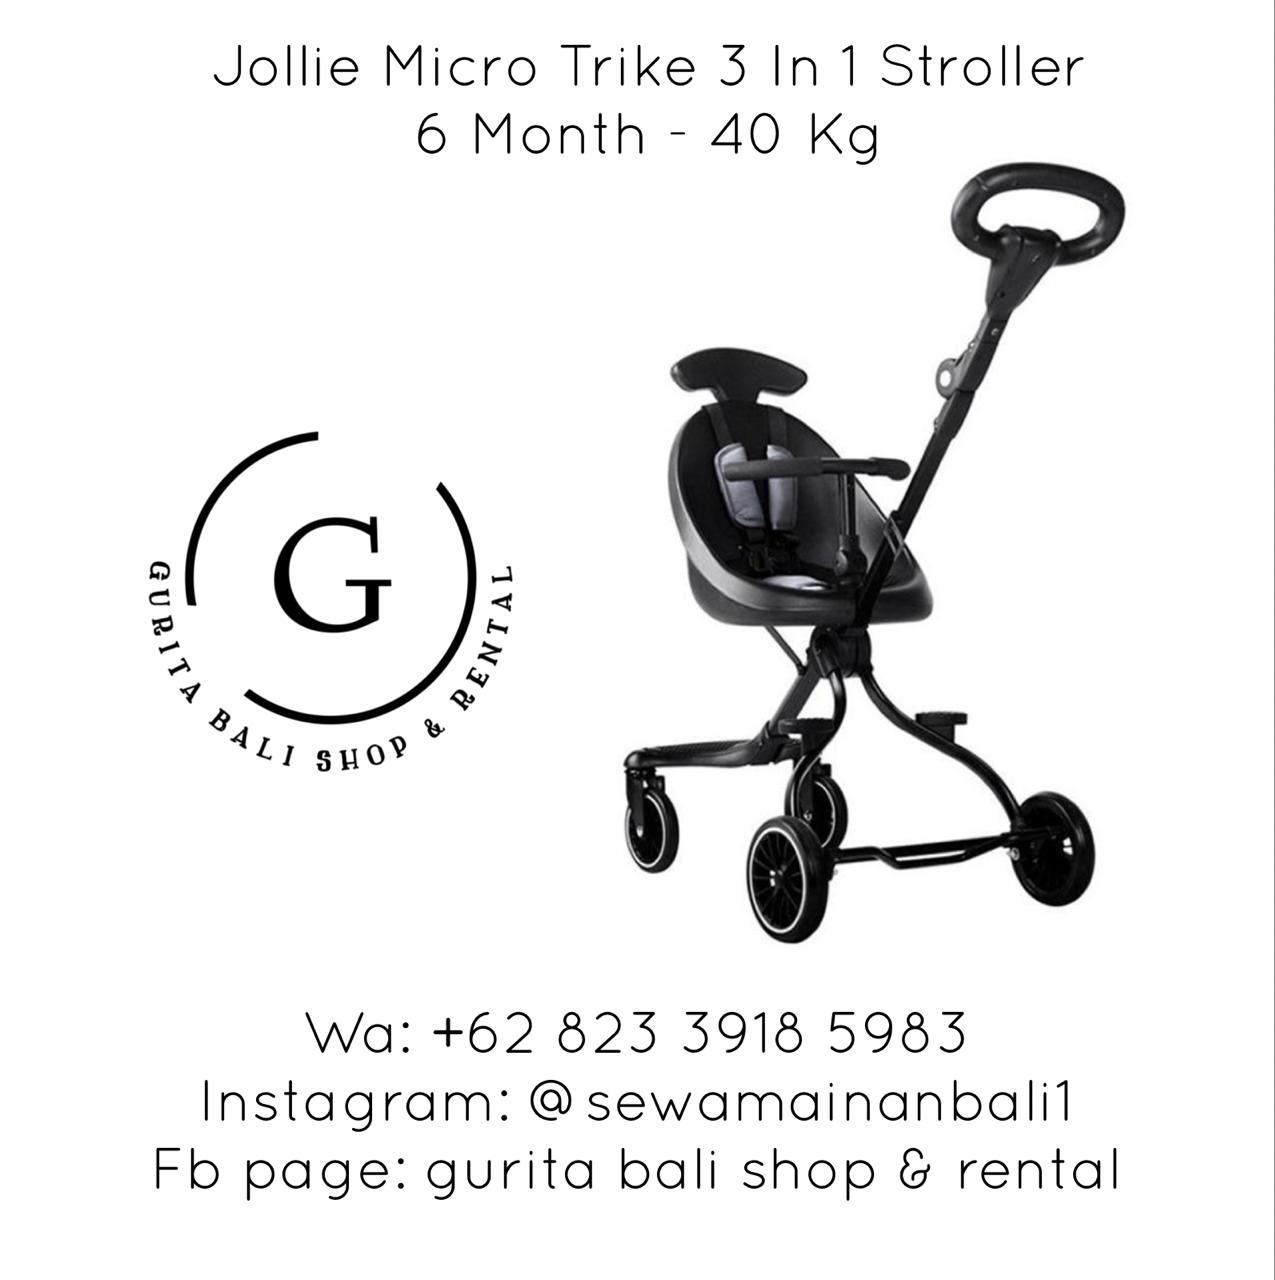 JOLLIE MICRO TRIKE 3 IN 1